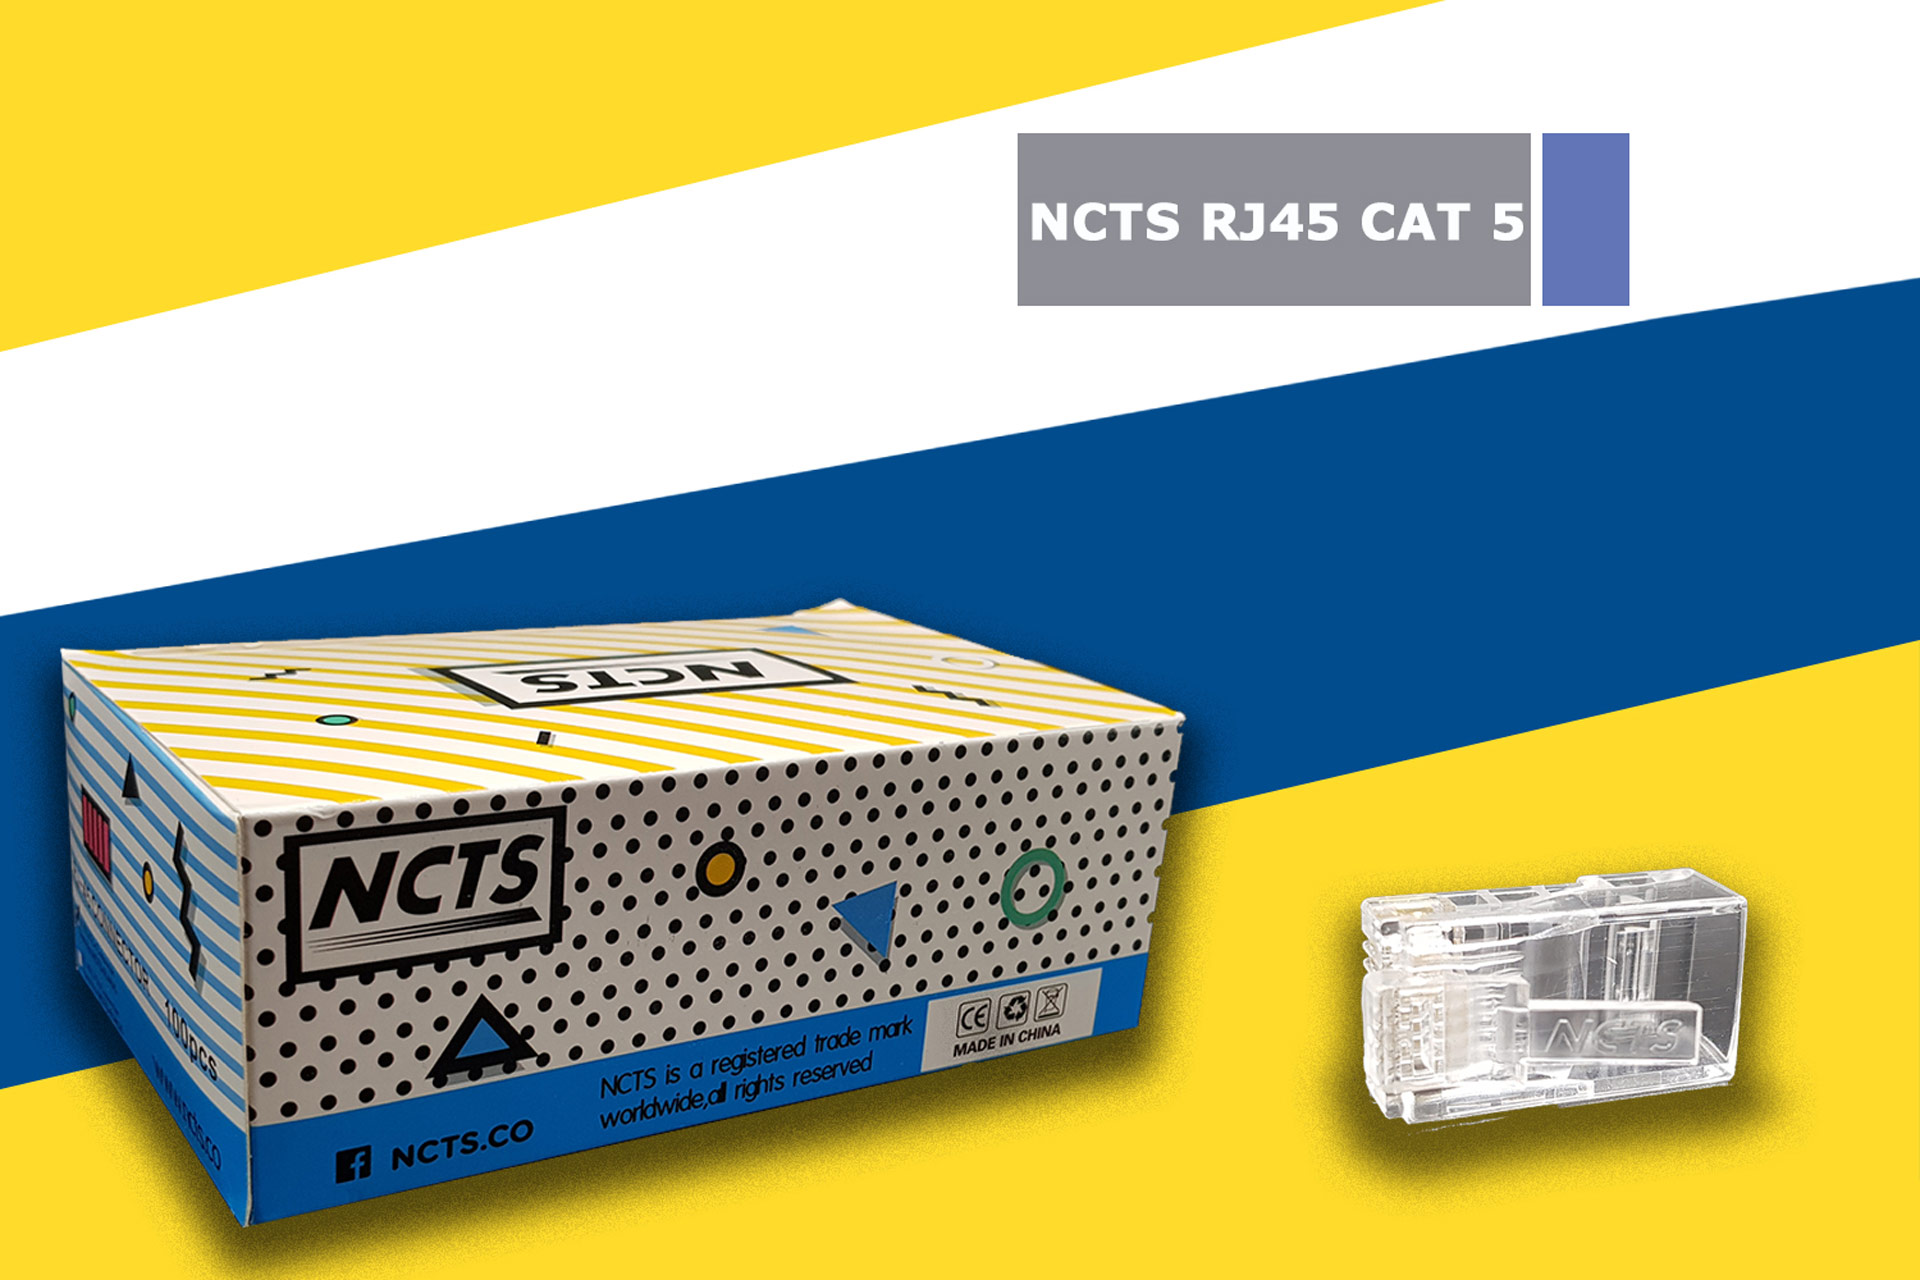 NCTS RJ45 CAT 5 BOX OF 100 HIGH QUALITY